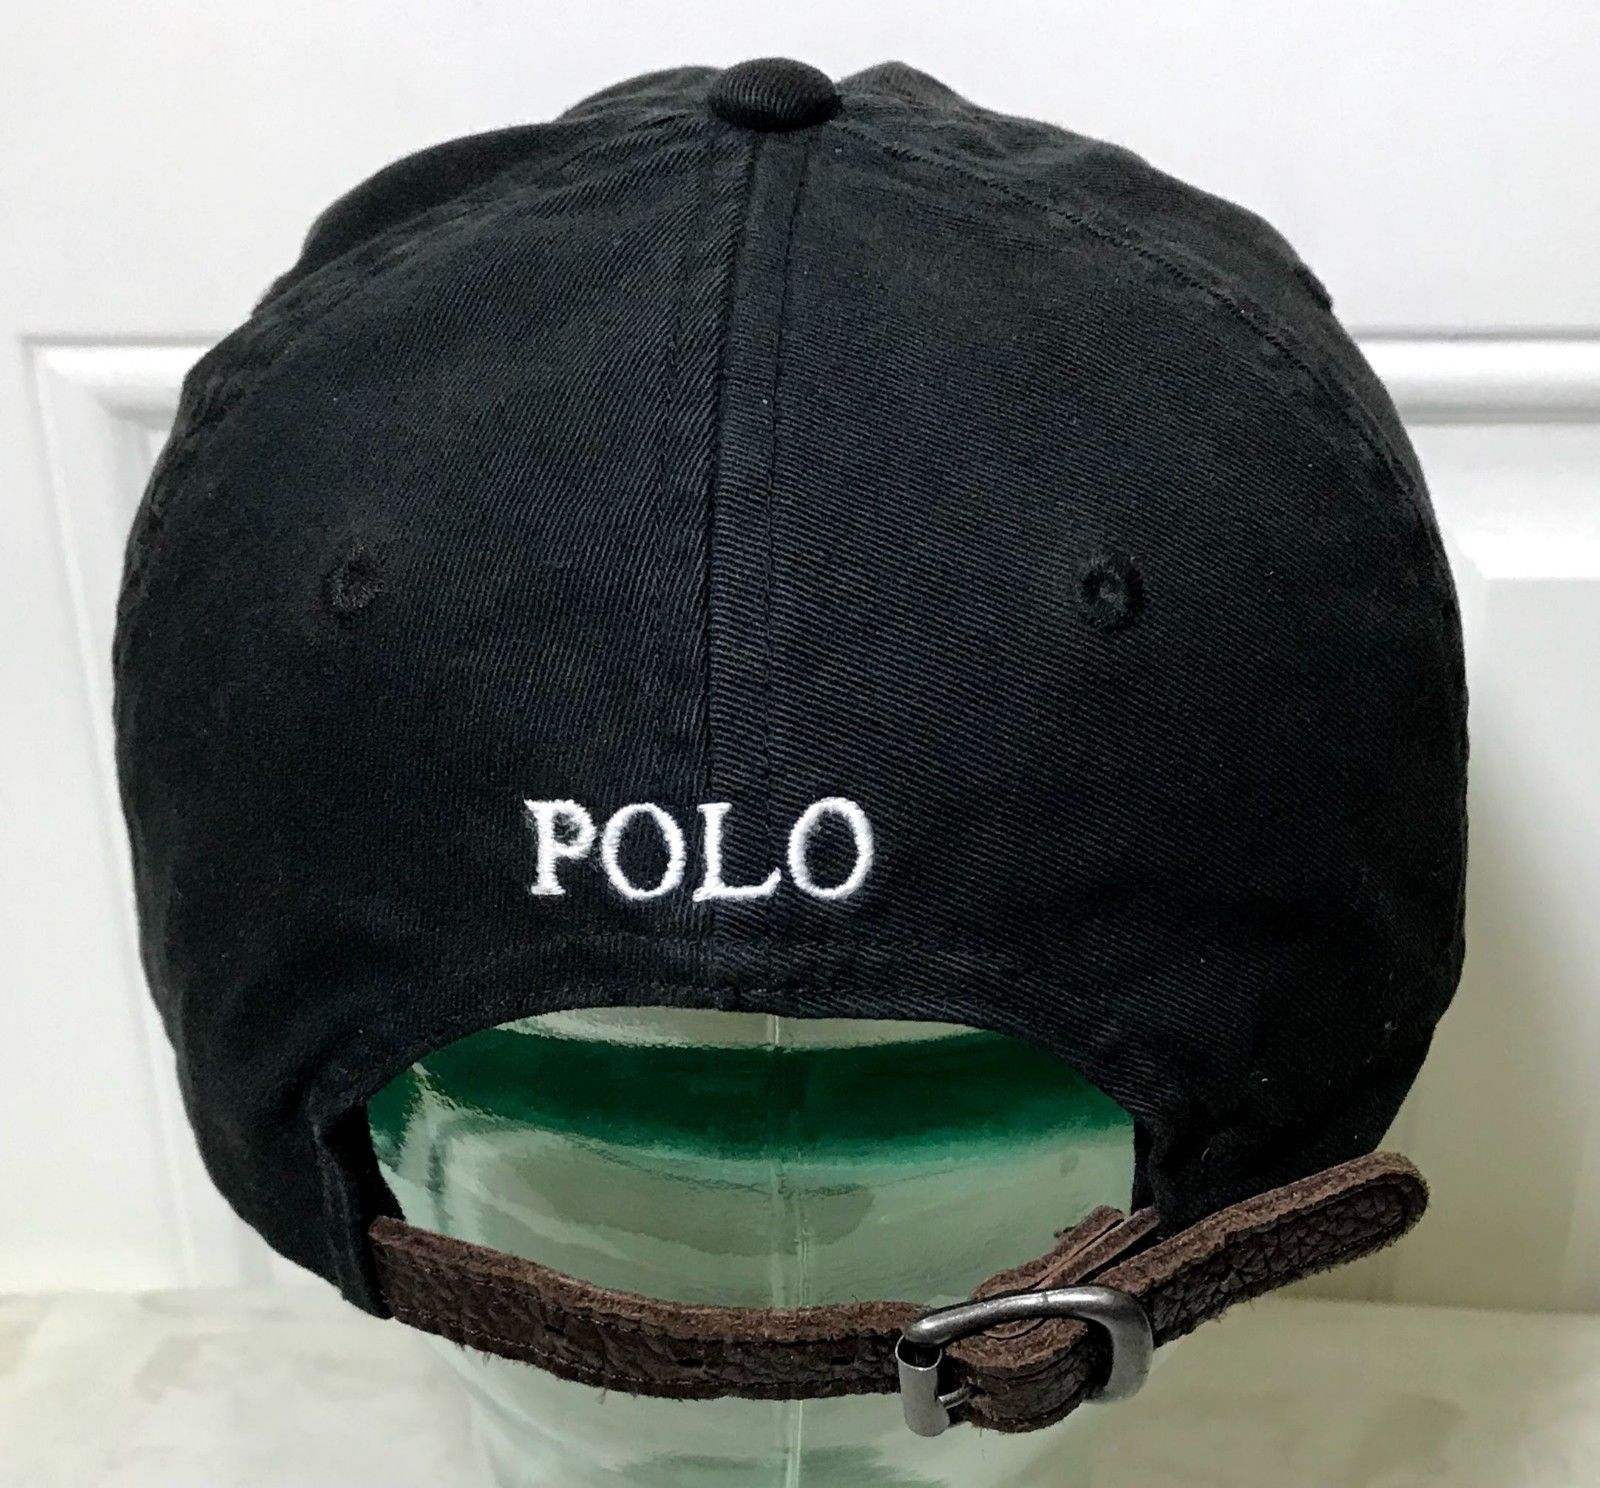 Polo Ralph Lauren Hat Leather Strap Pony Black Vintage 90s Dad Cap Spell  Out  841aa41c6ea0